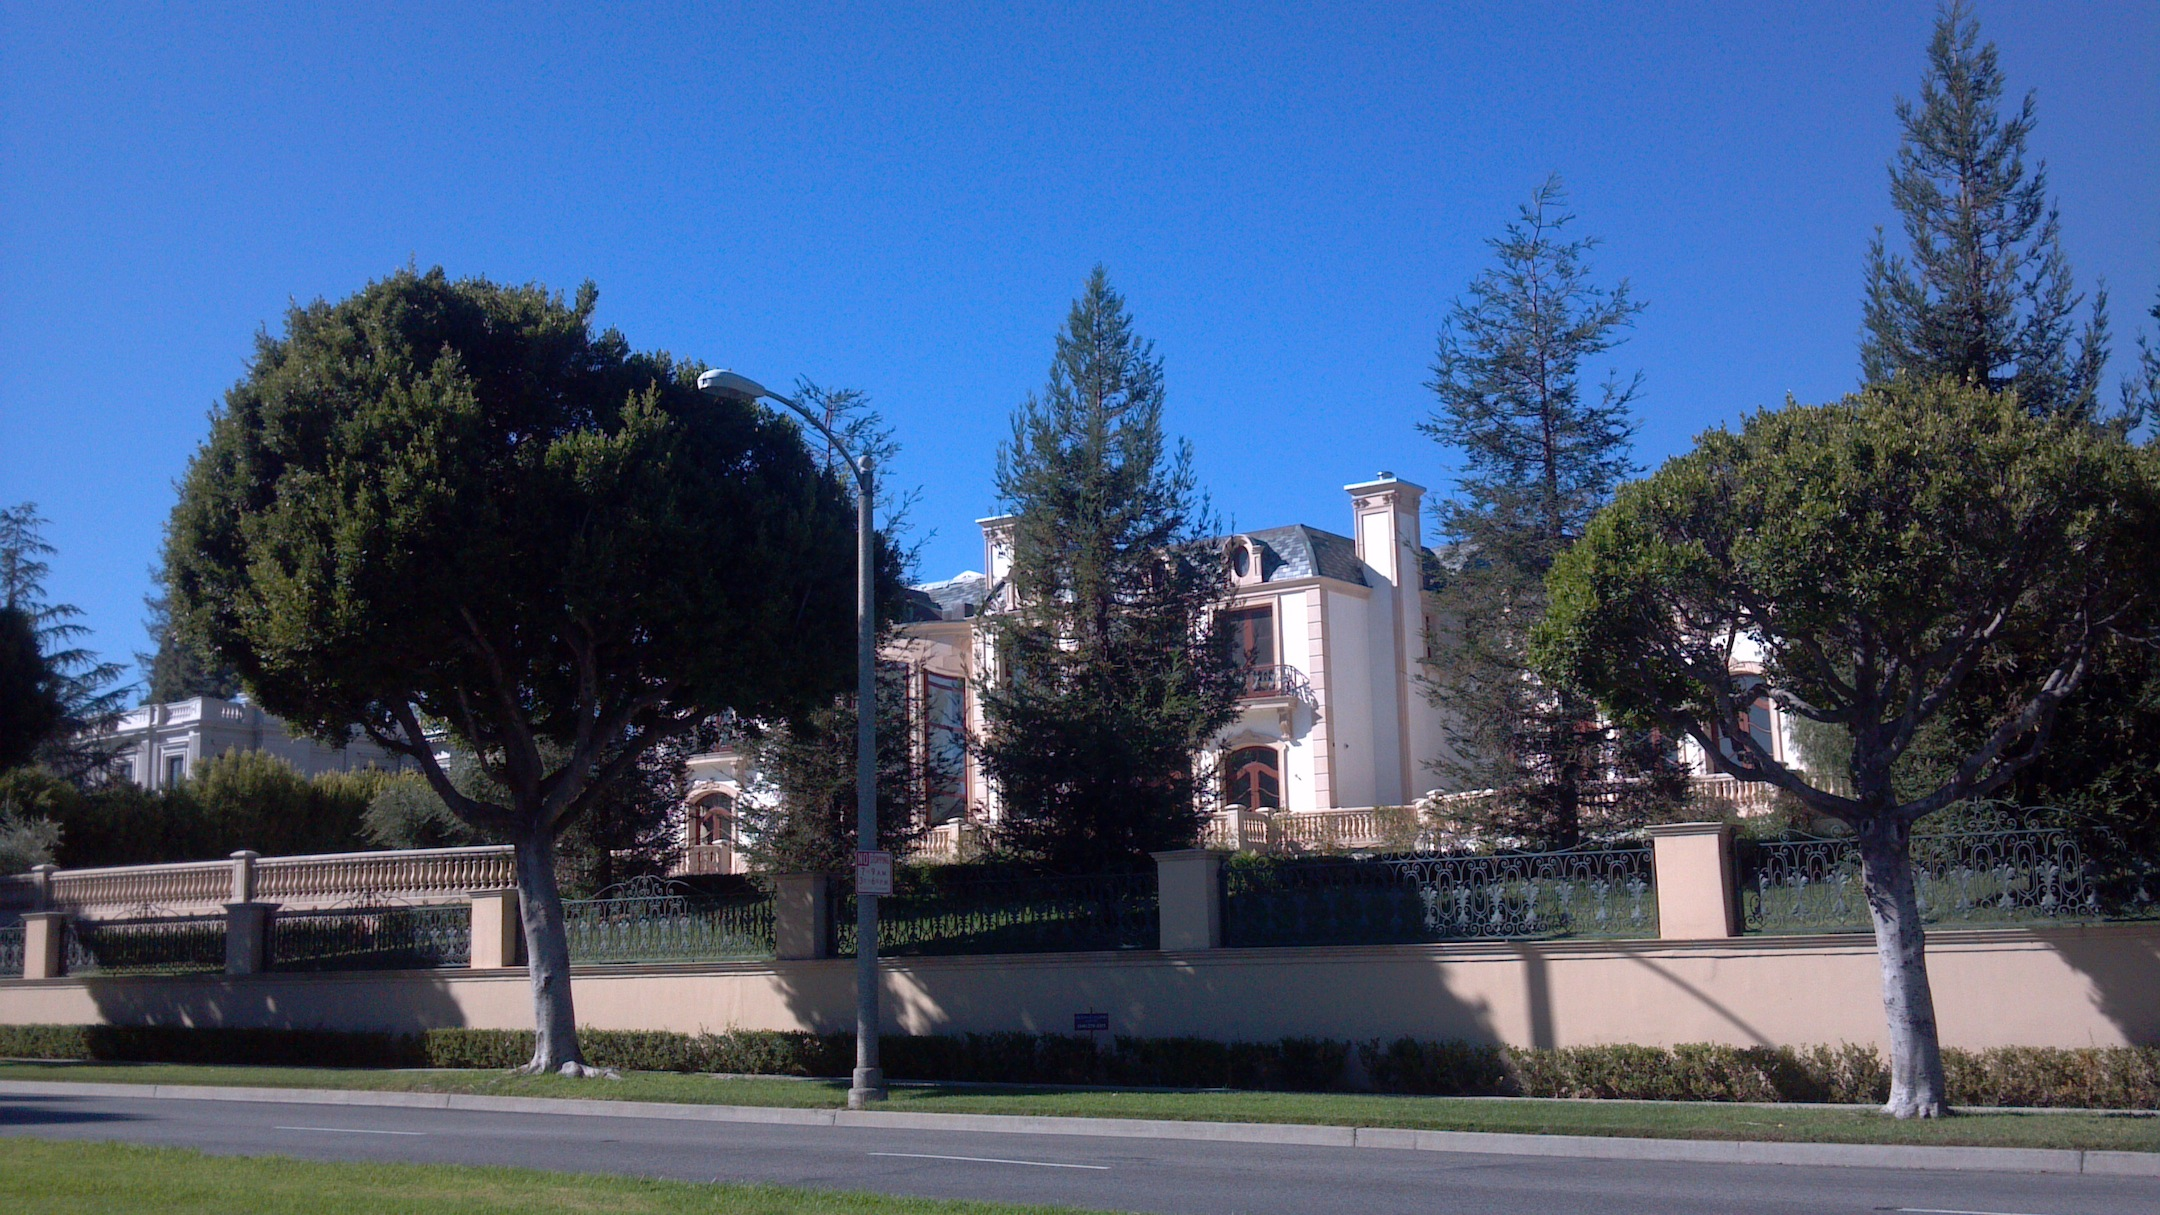 Tours of celebrity and movie stars homes in beverly hills for Celebrity home tours beverly hills